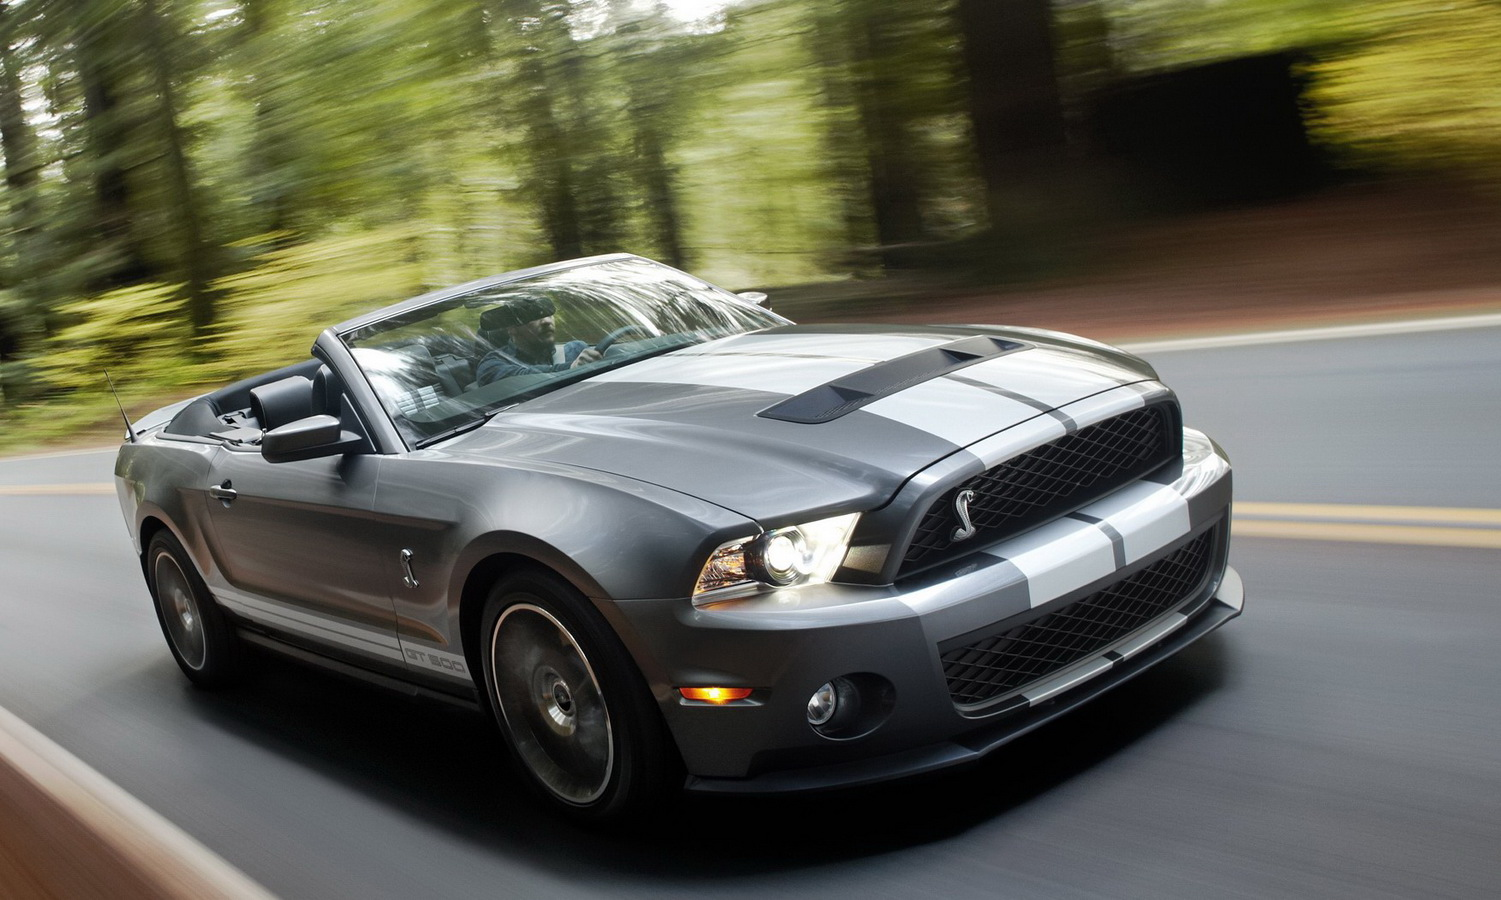 new 2010 ford shelby gt500 coupe and convertible revealed photo its your auto world new cars auto news reviews photos videos